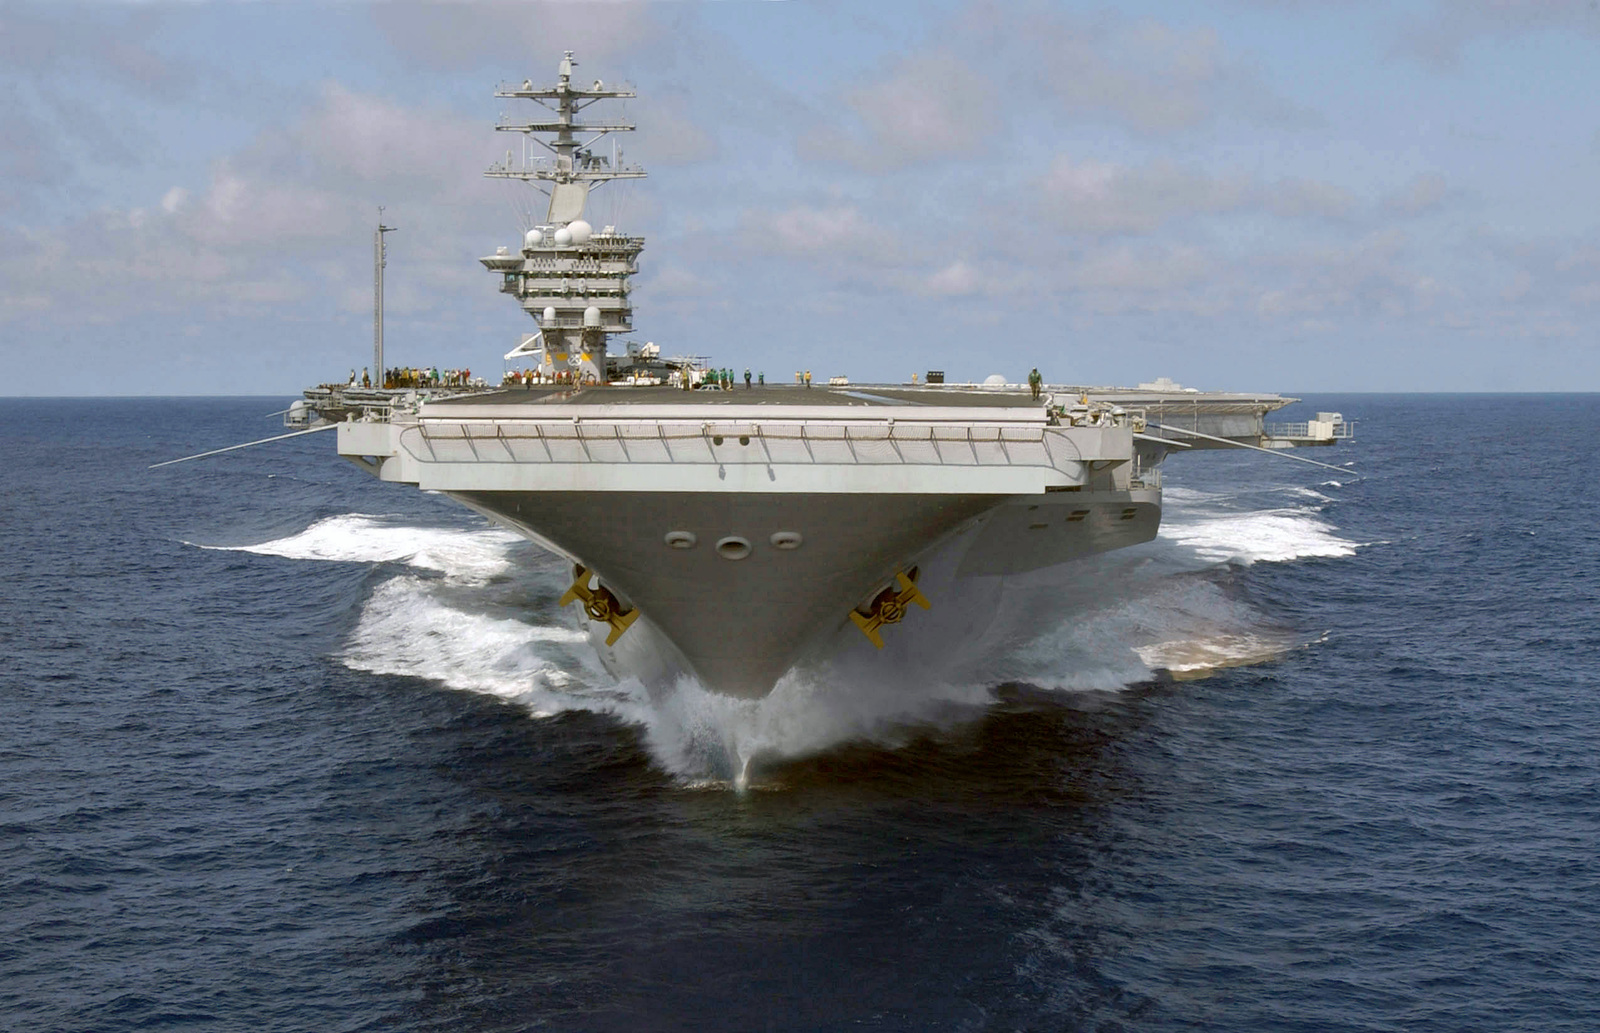 Bow view of the US Navy (USN) Aircraft Carrier USS NIMITZ (CVN 68) underway off the